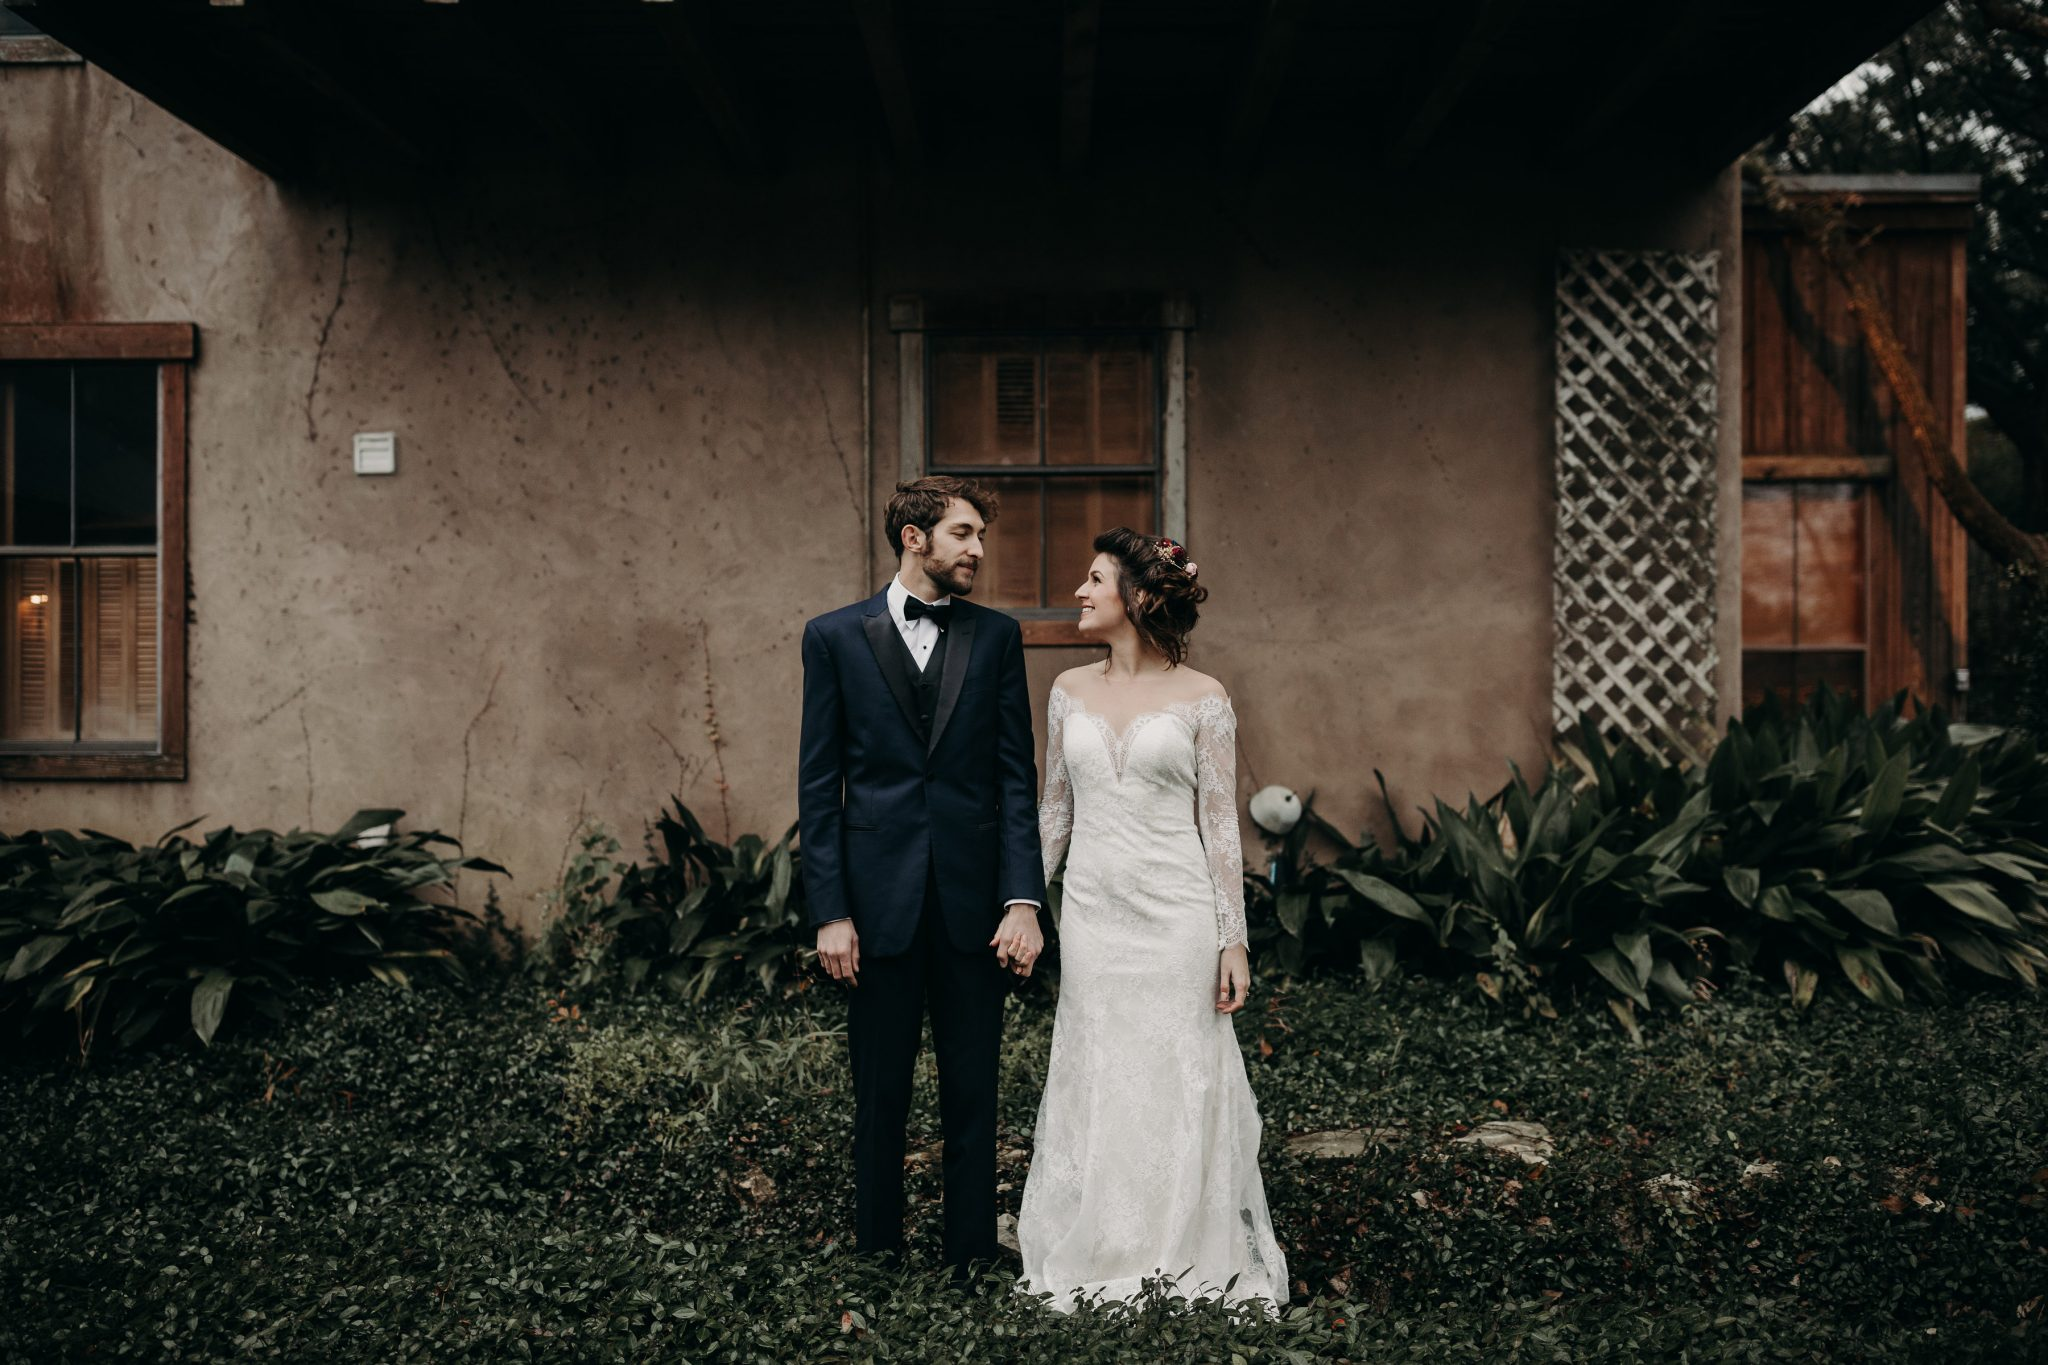 Bride and groom holding hands side-by-side and smiling at each other while standing in the grass in front of the side of a rustic house at House on the Hill in Austin, Texas. Photograph by Austin, Texas wedding photographer Nikk Nguyen.